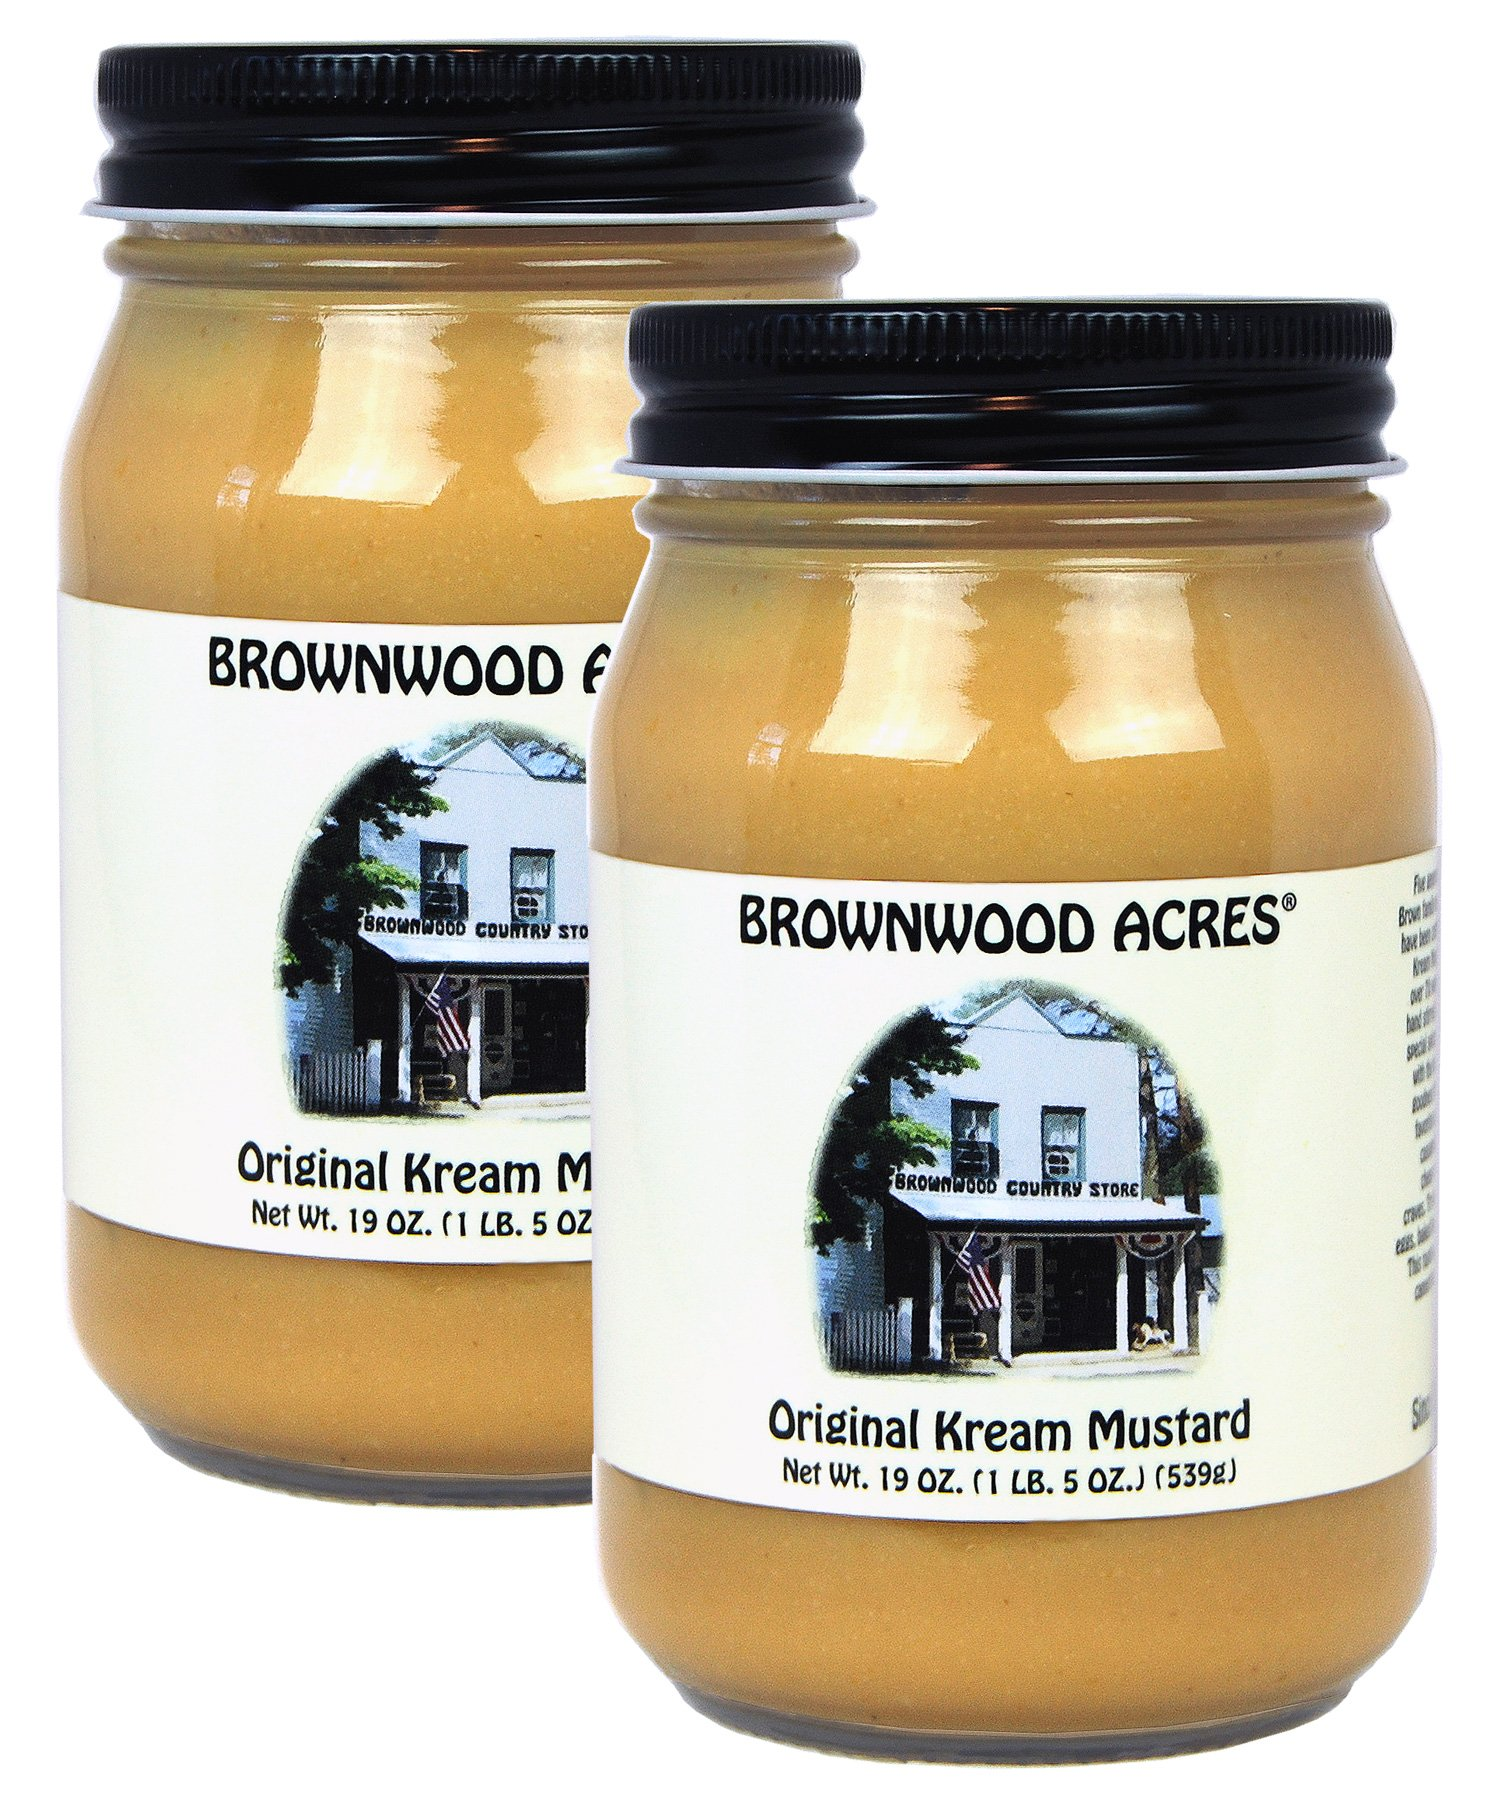 Brownwood Acres Kream Mustard - LARGE - 2 PACK - Shipping Included